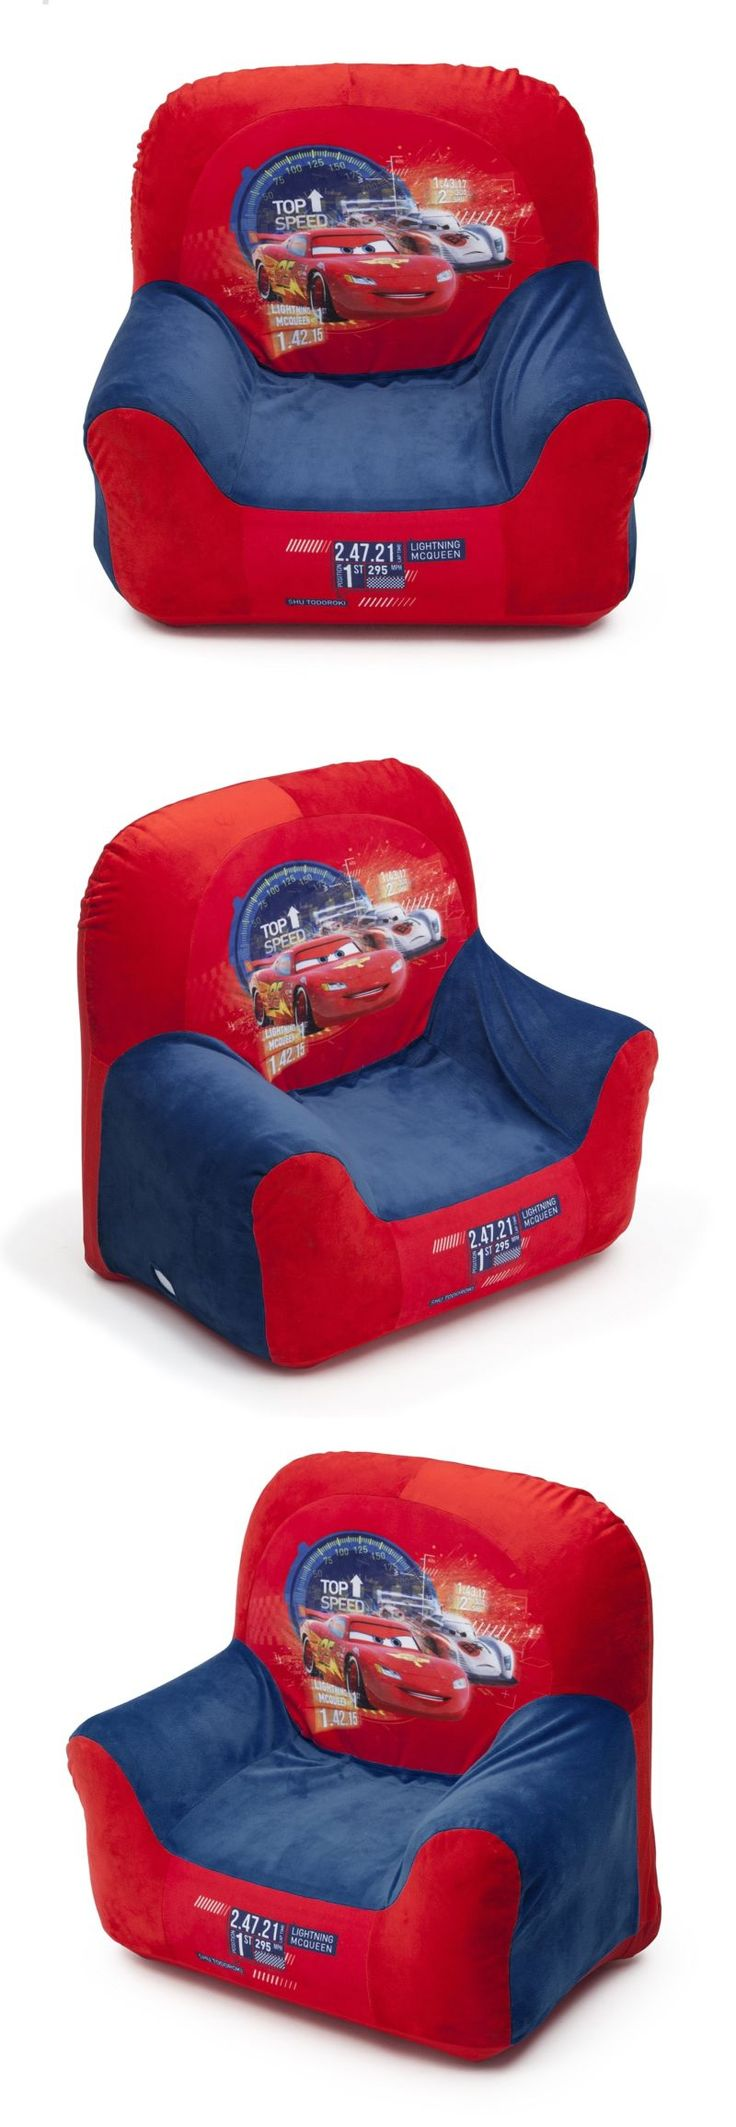 Kids Furniture: Disney Car Club Chair For Kids Toddler Furniture Baby Comfortable Seat Chairs -> BUY IT NOW ONLY: $19.49 on eBay!